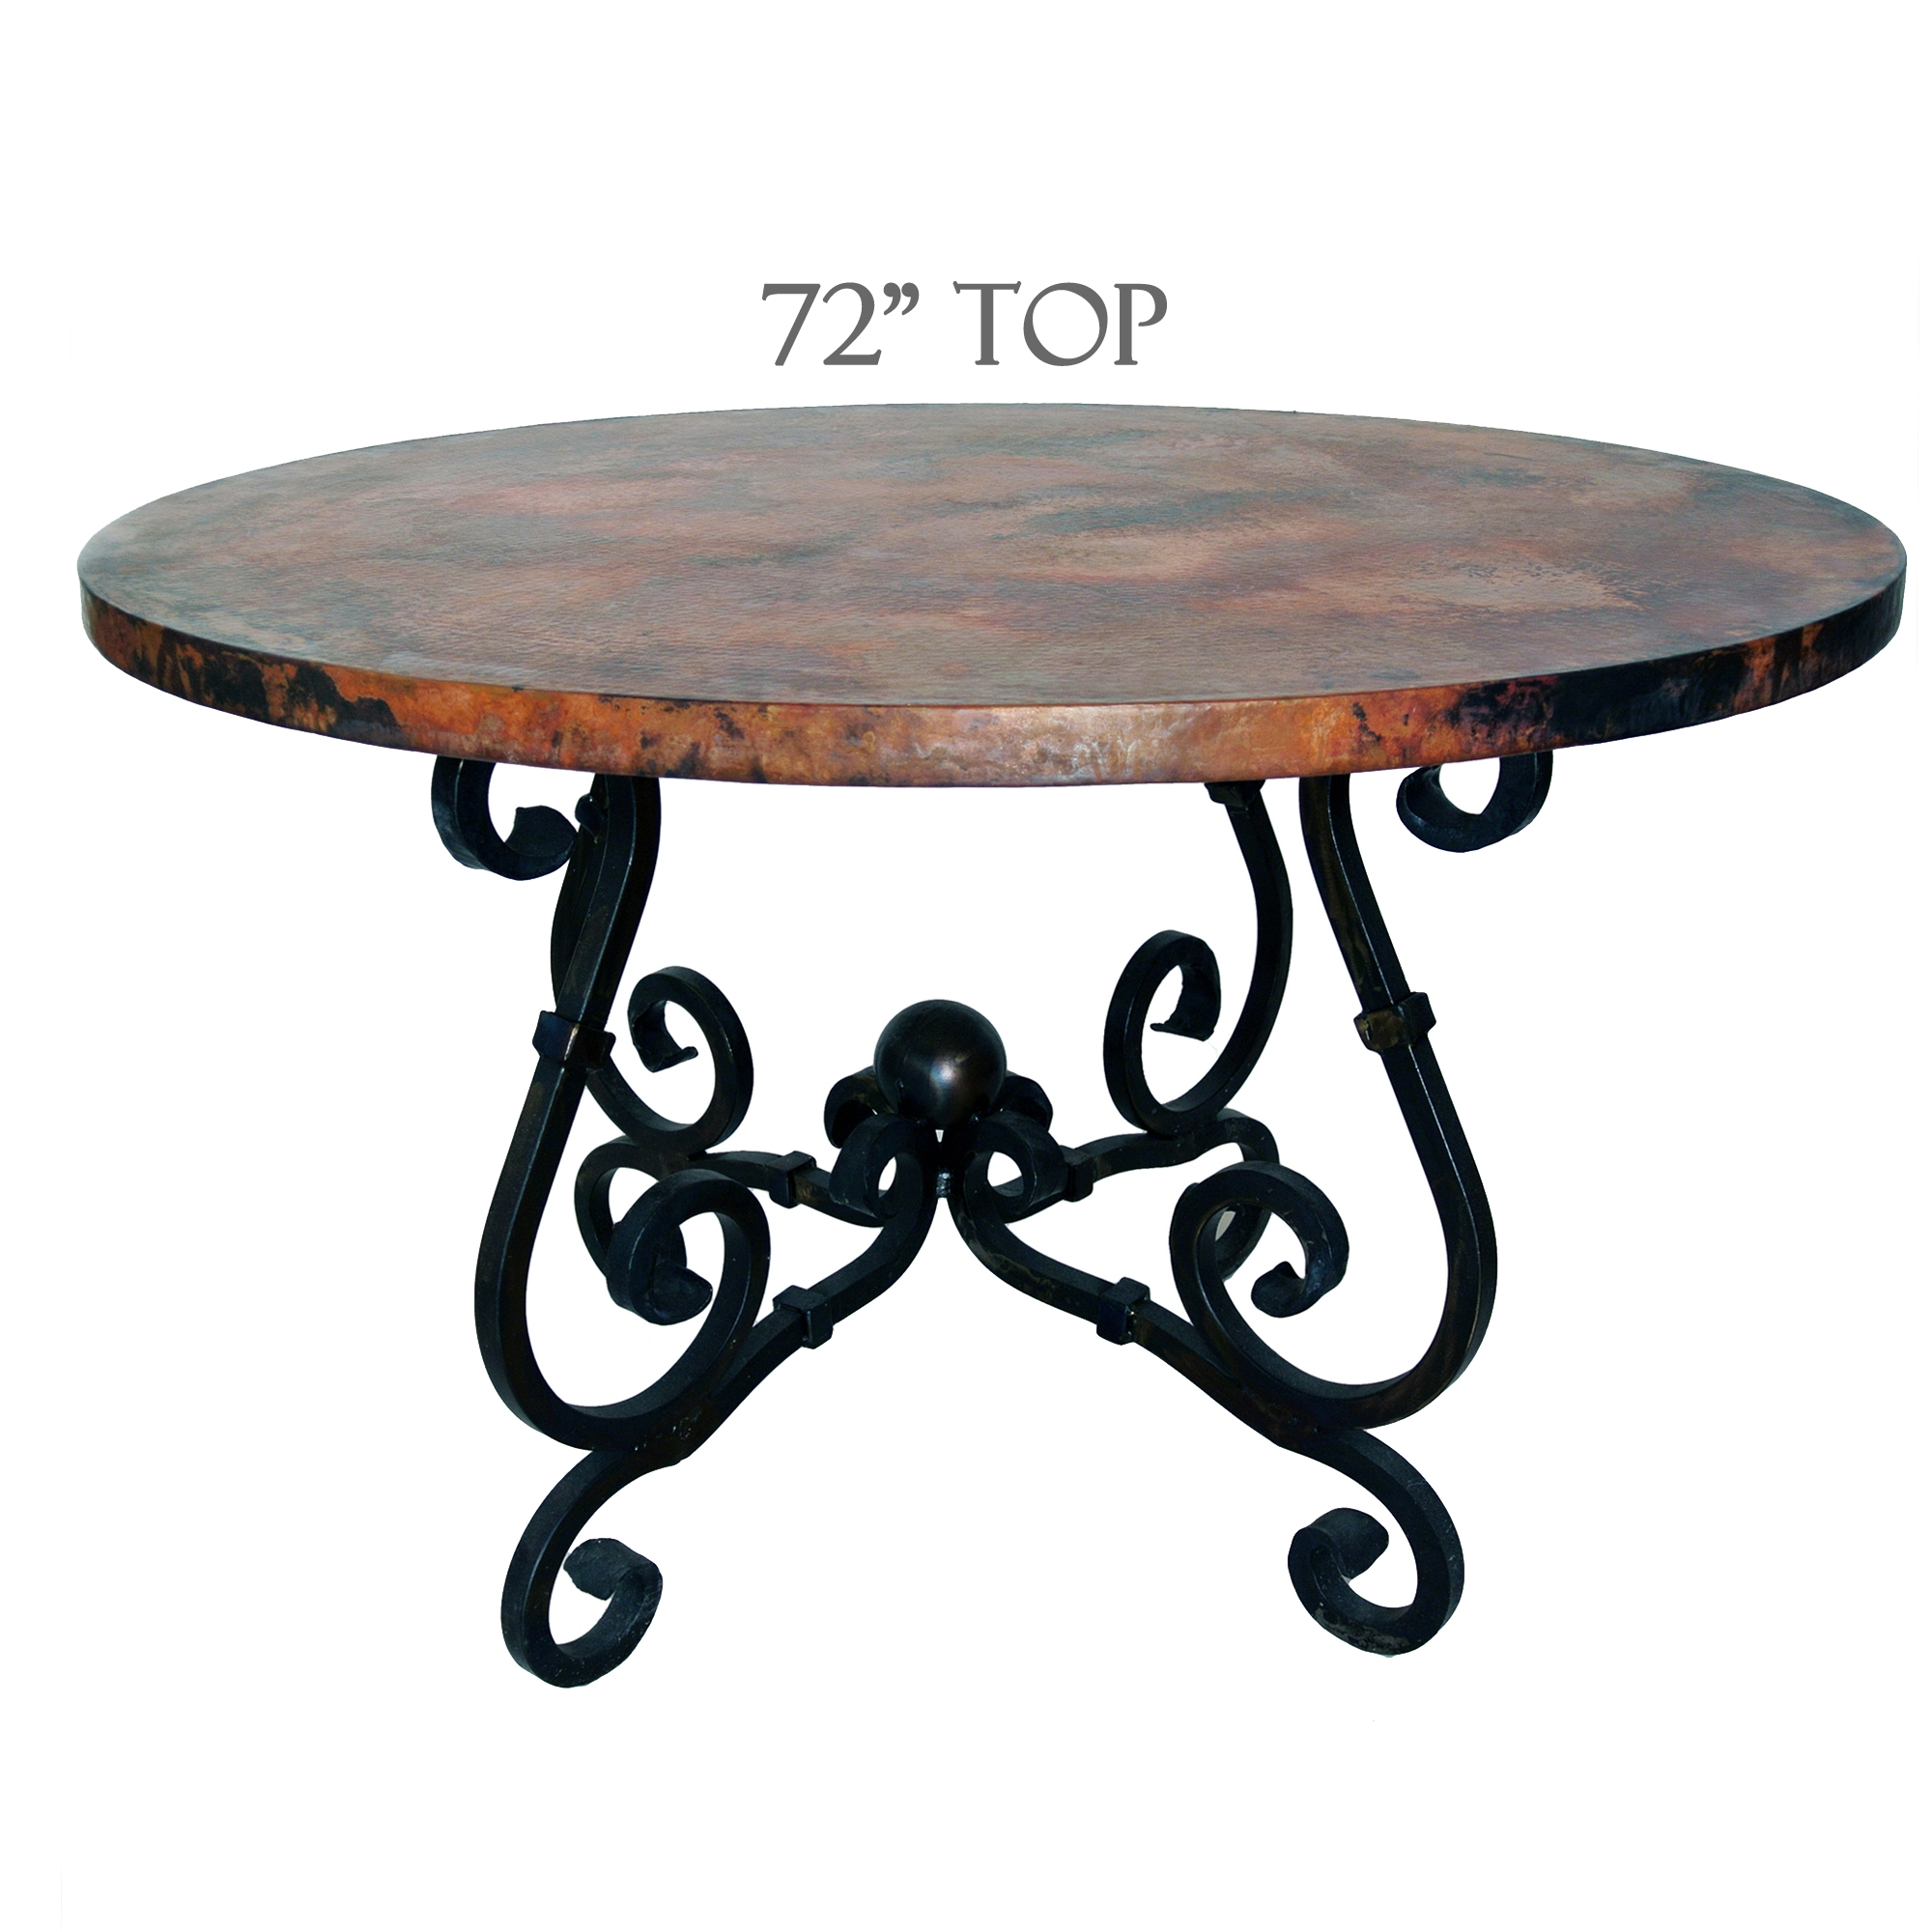 French Dining Table With French Styled Wrought Iron Table Base And 72